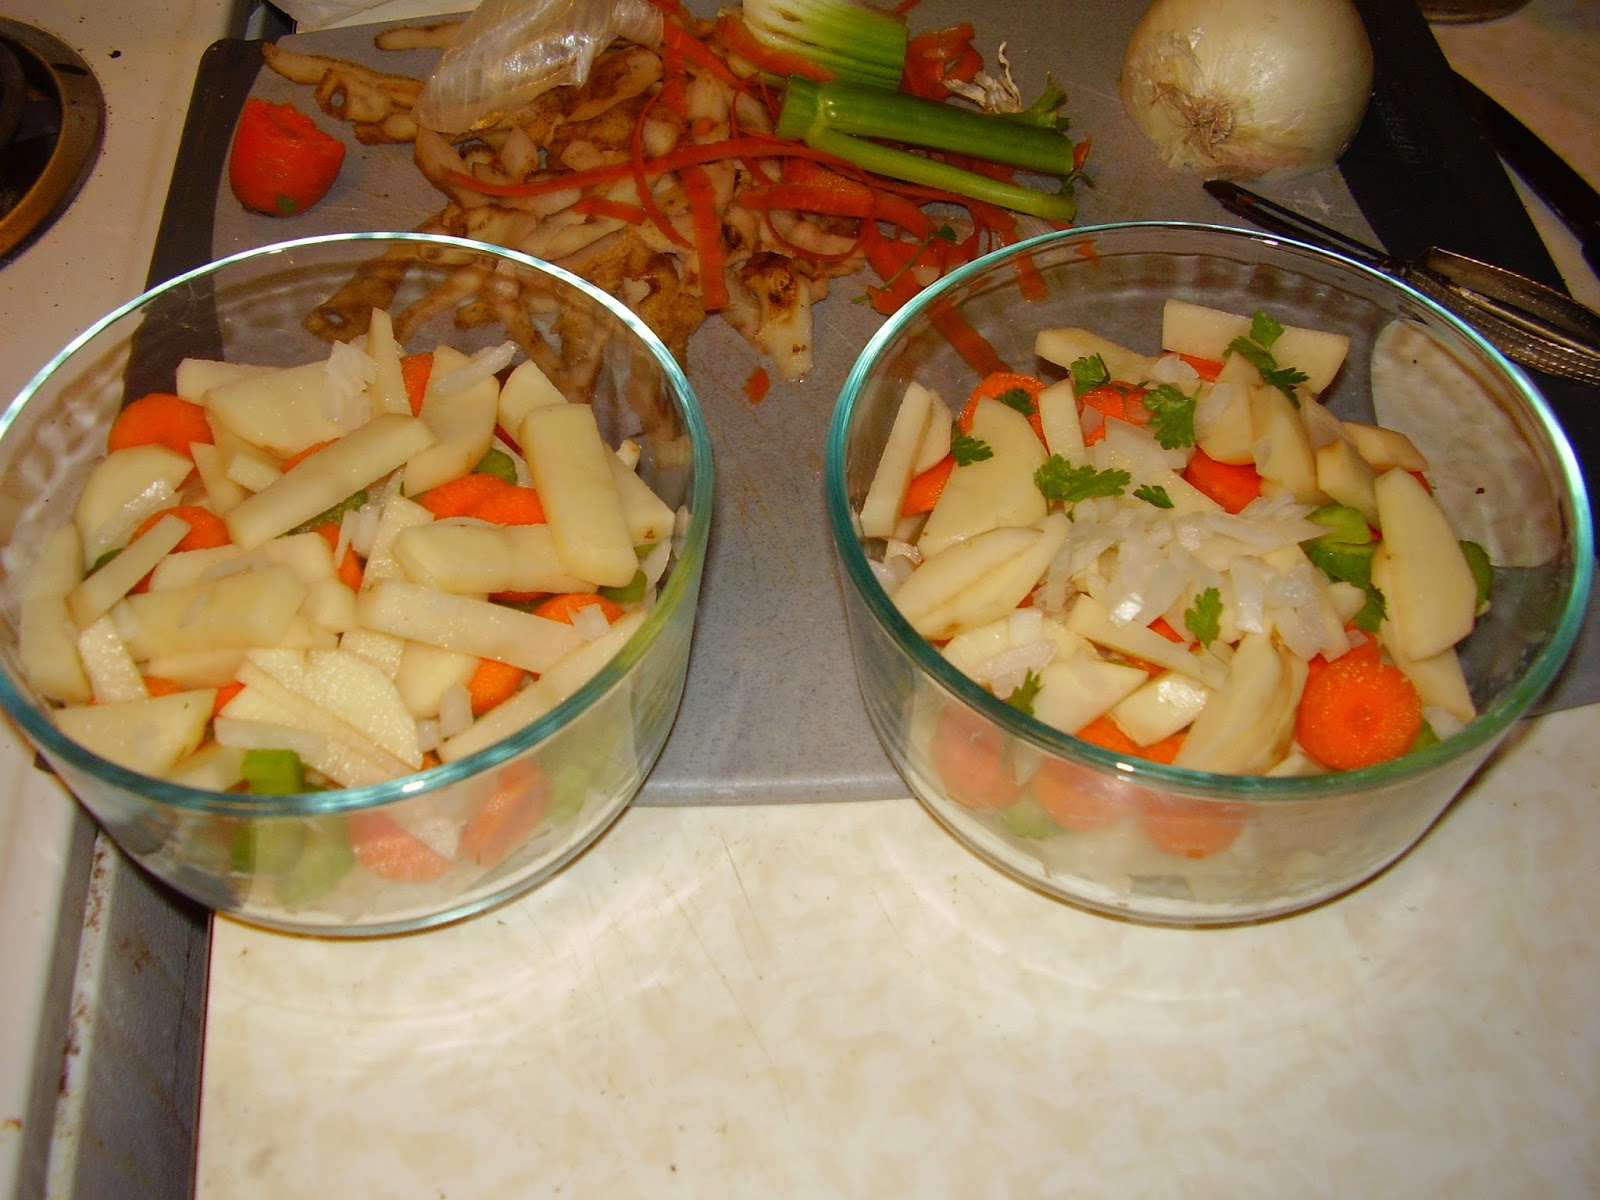 Sliced vegetables for a Victorian savory pie.